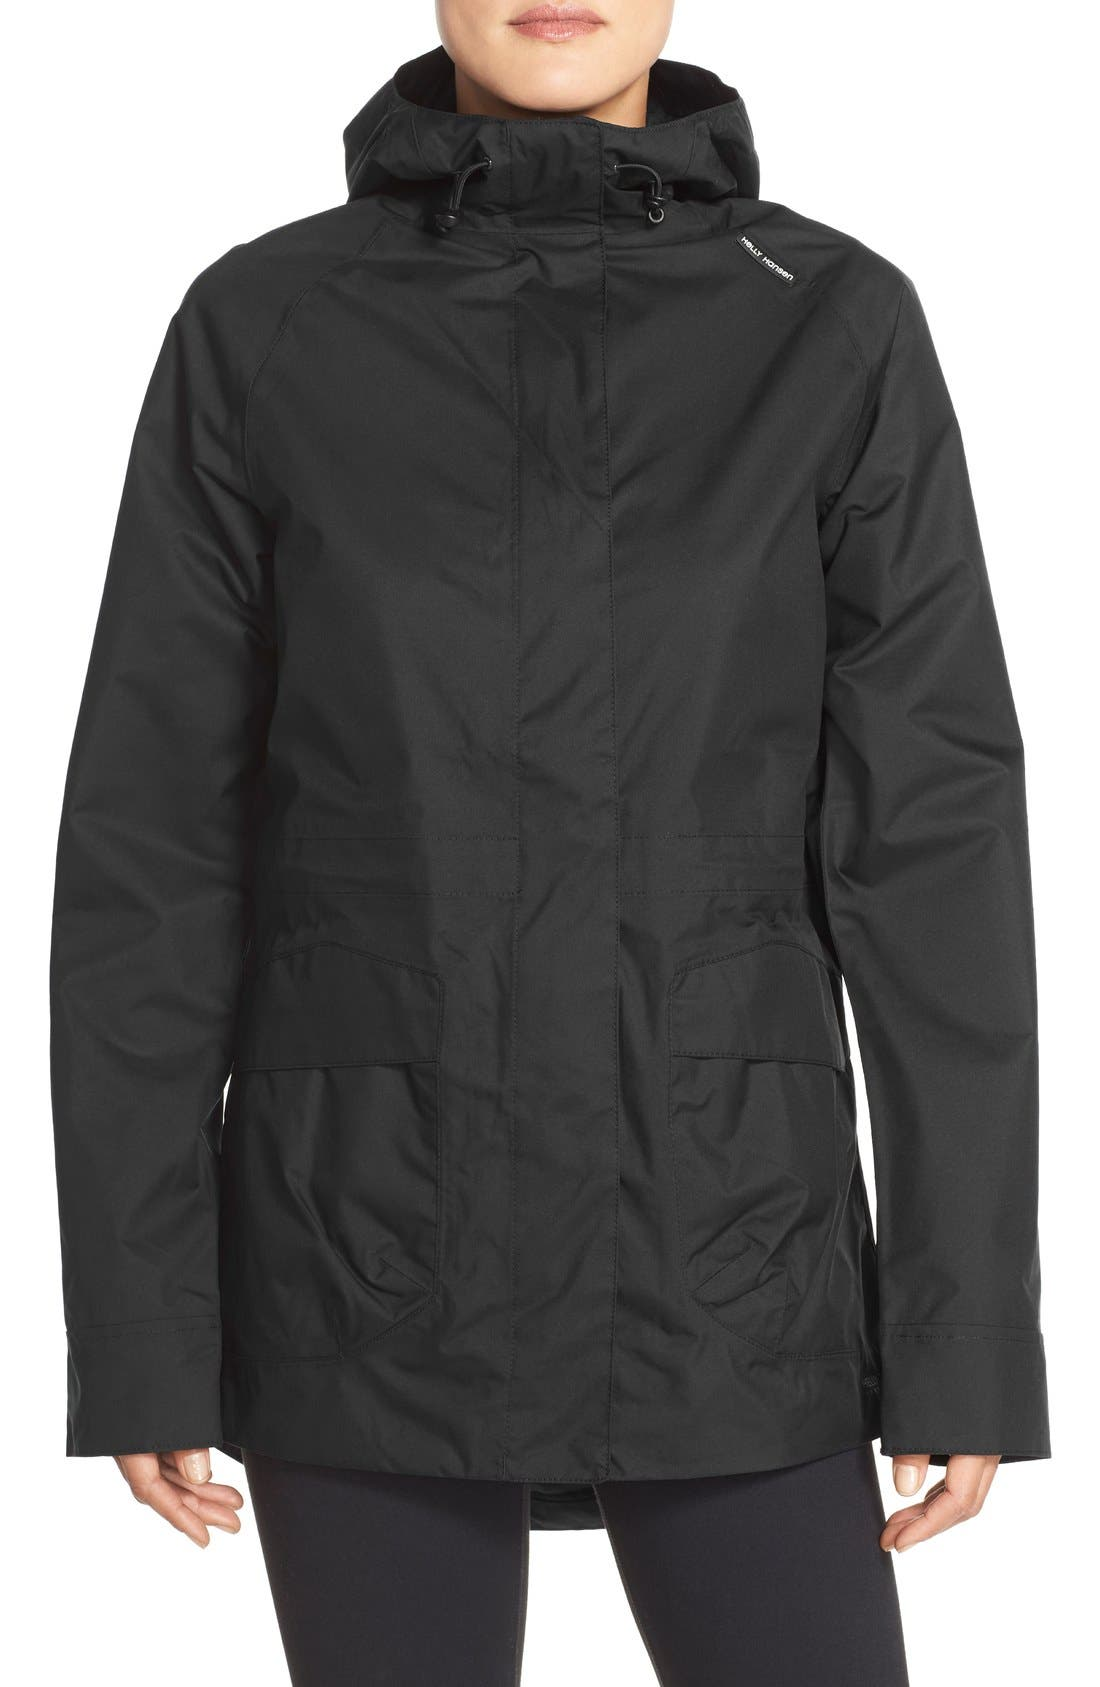 Main Image - Helly Hansen 'Appleton' Waterproof Coat